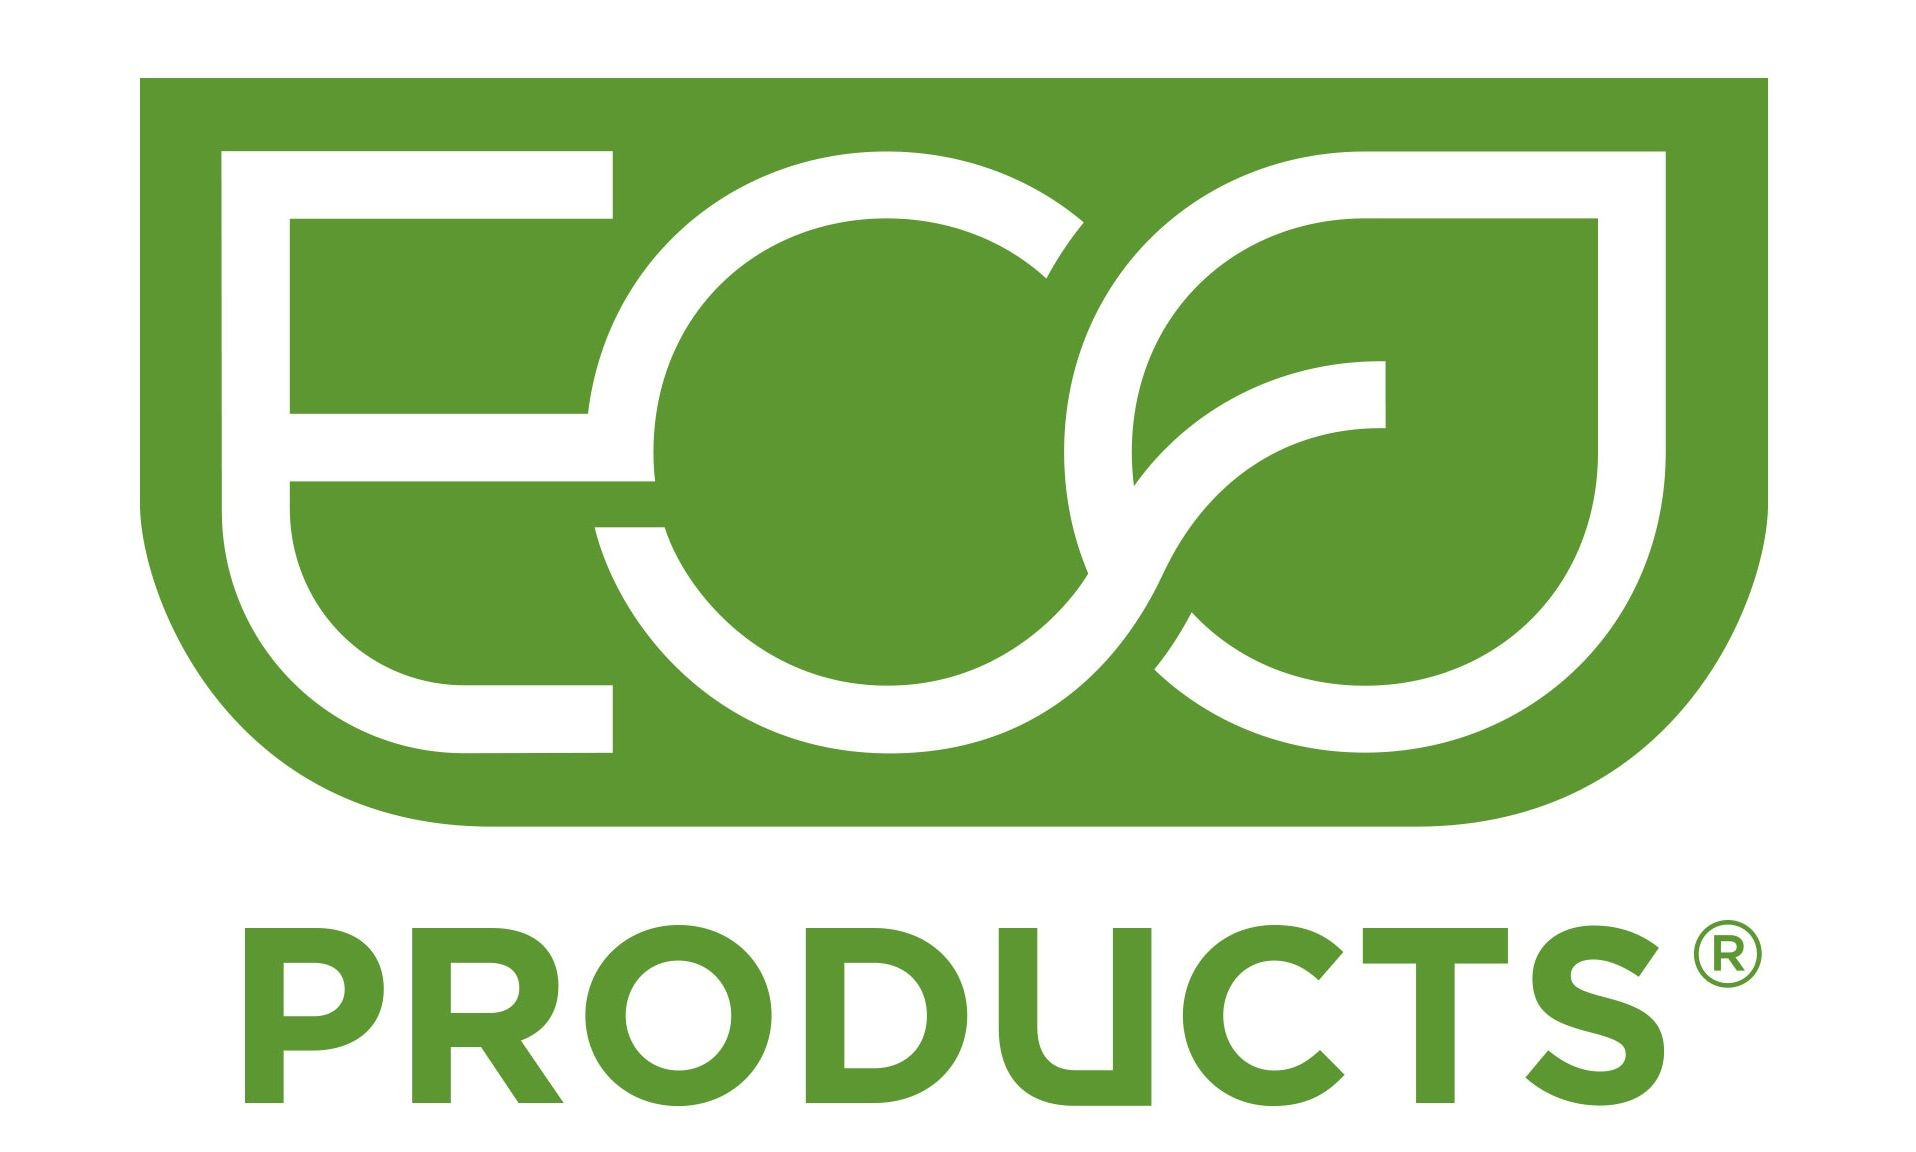 ECO_PRODUCTS.jpg